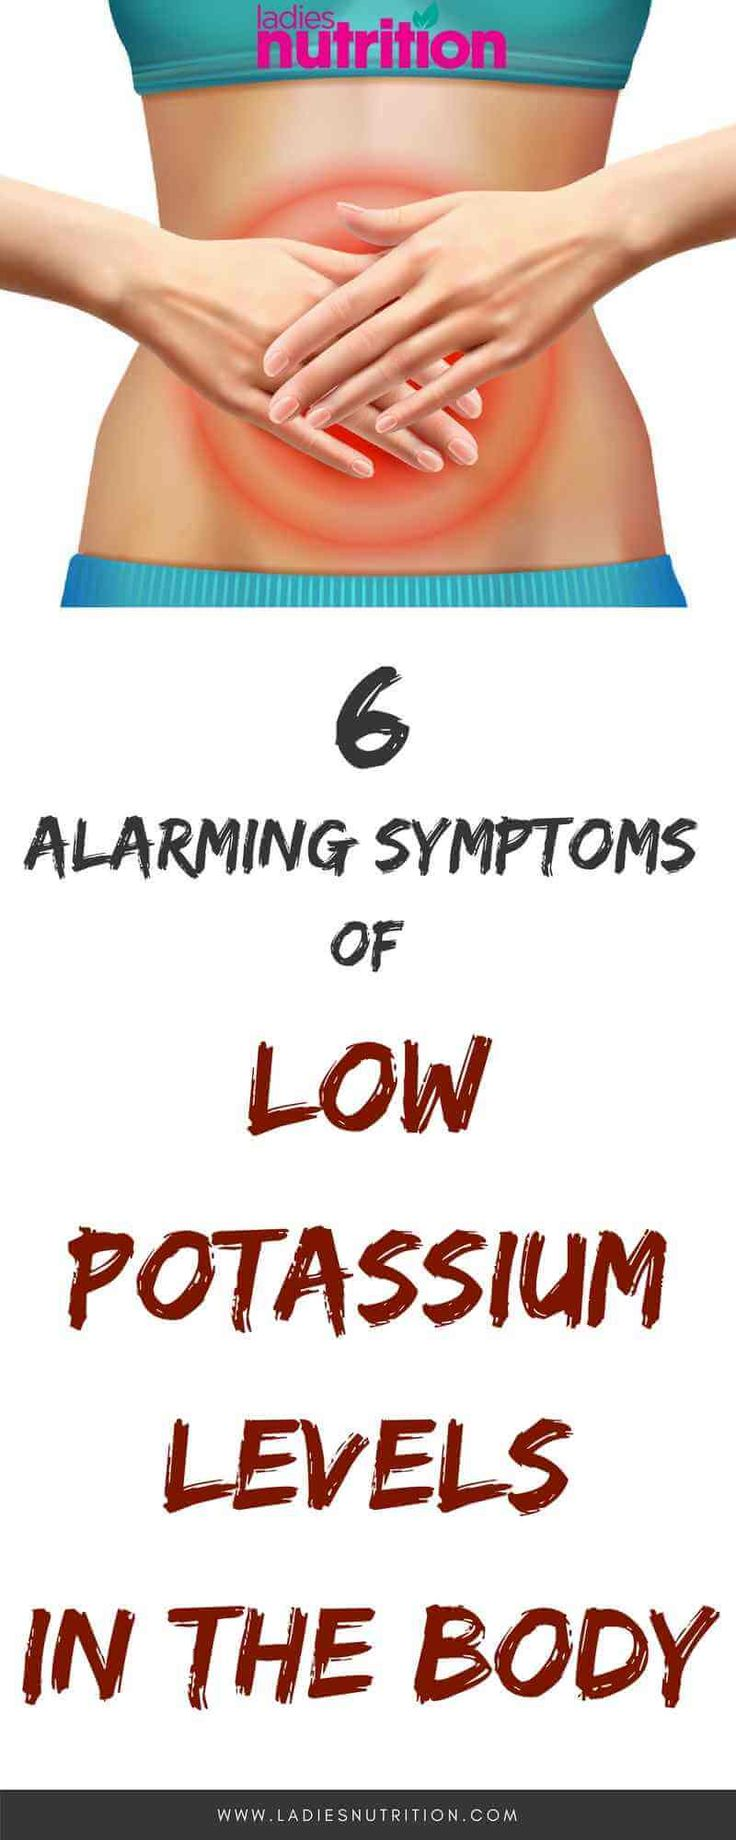 About 98% of potassium is present in the cells; therefore any little alteration to its level can have adverse effects on the muscles, heart, and nerves.